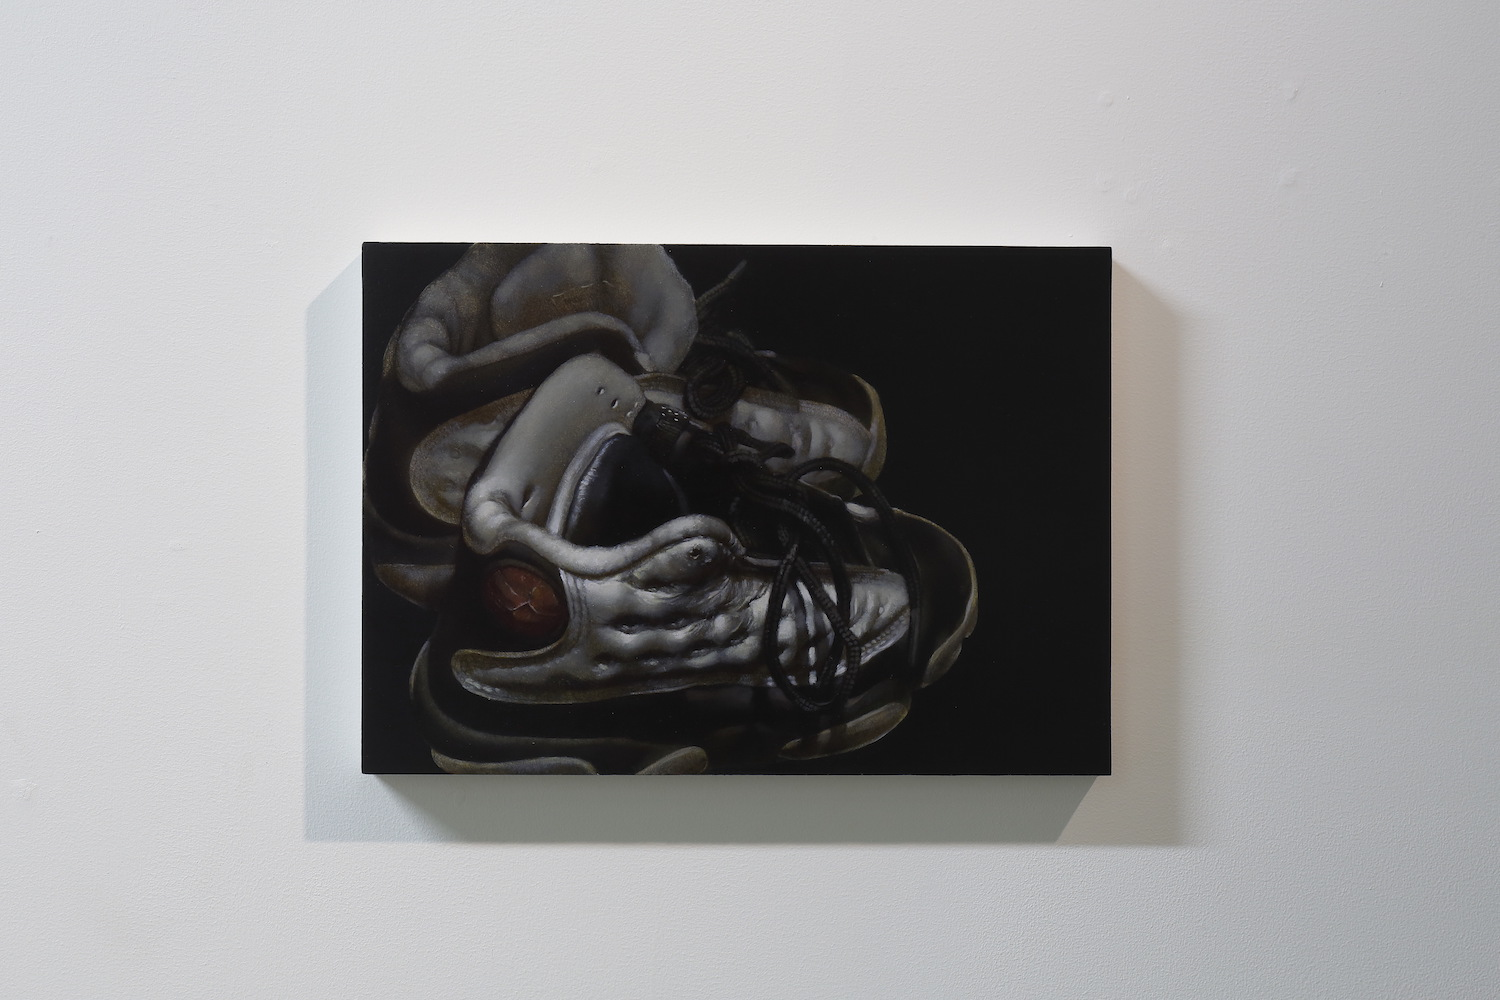 Arisa Kumagai, JORDAN 1991-2019, 2019, oil on panel, 21 x 29.7 cm